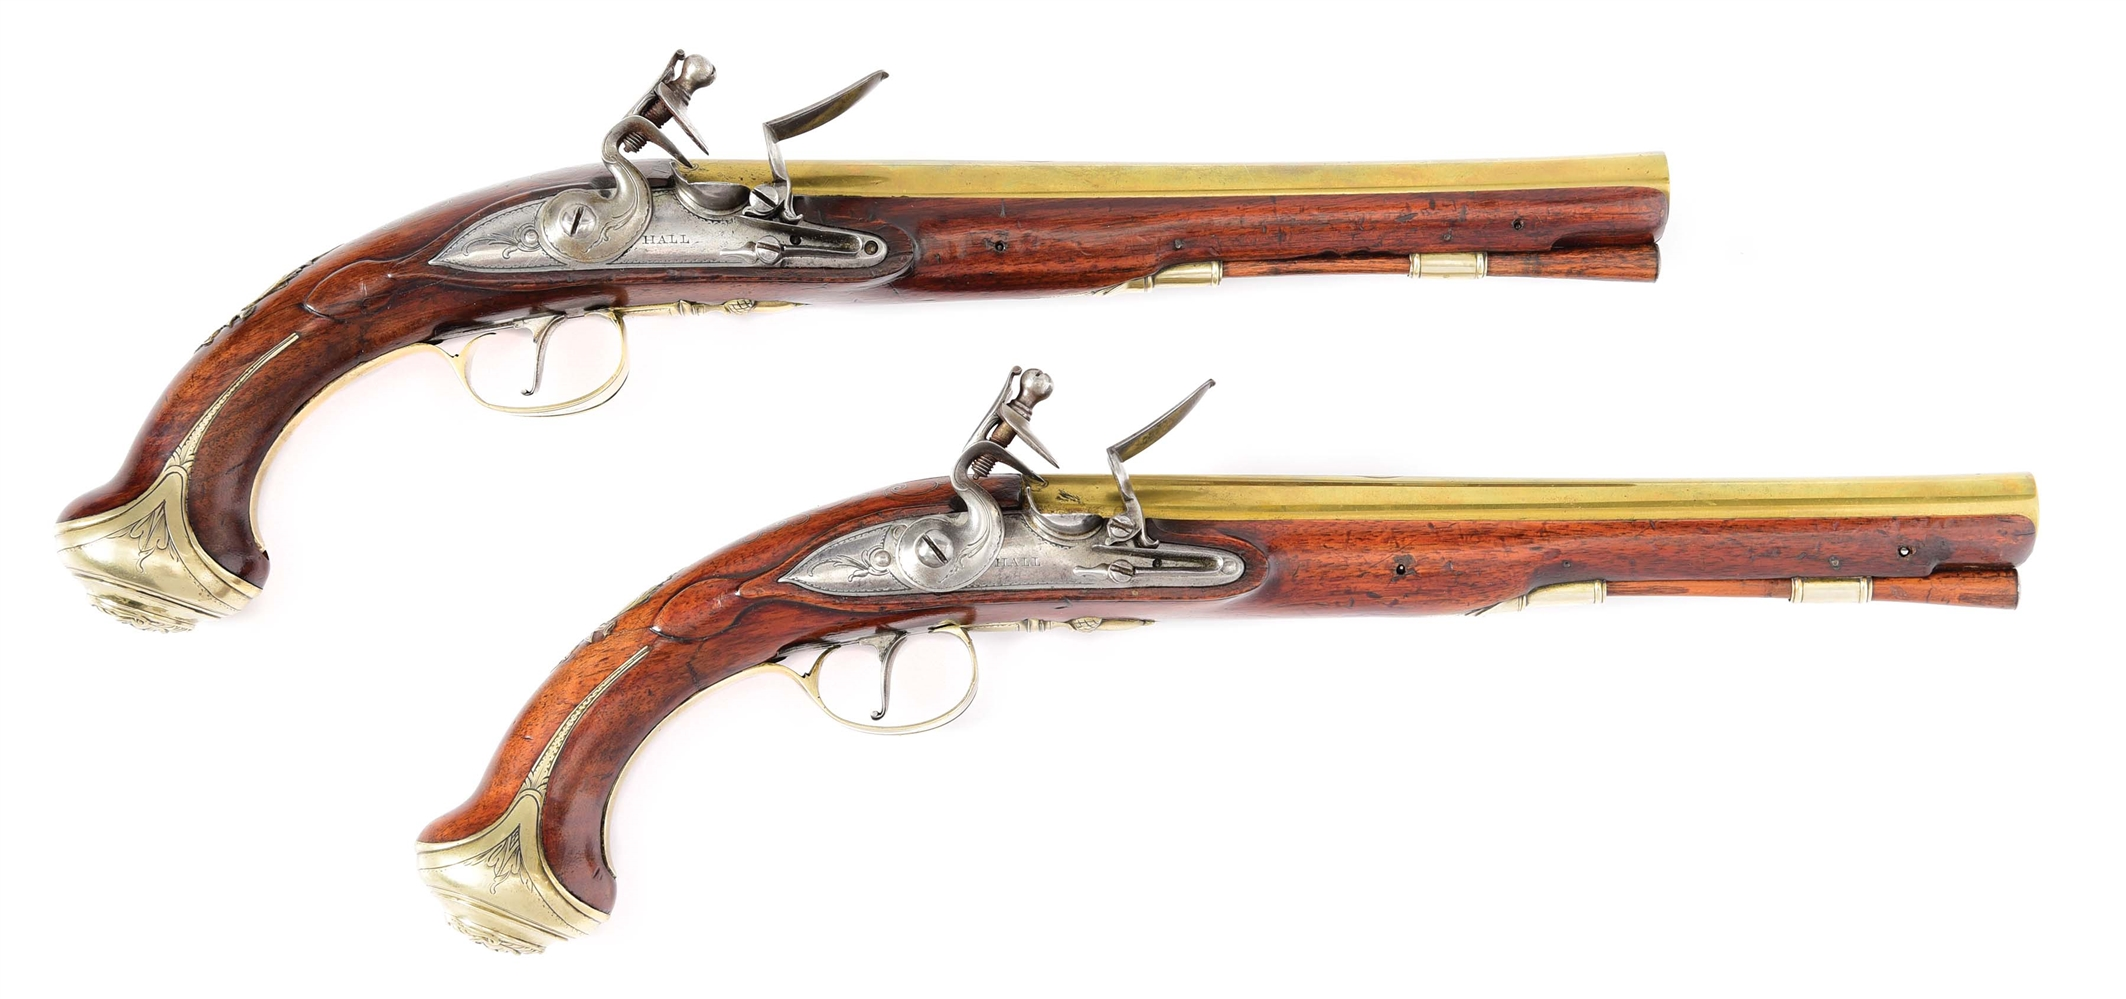 May 27, 2020 Early Arms & Militaria